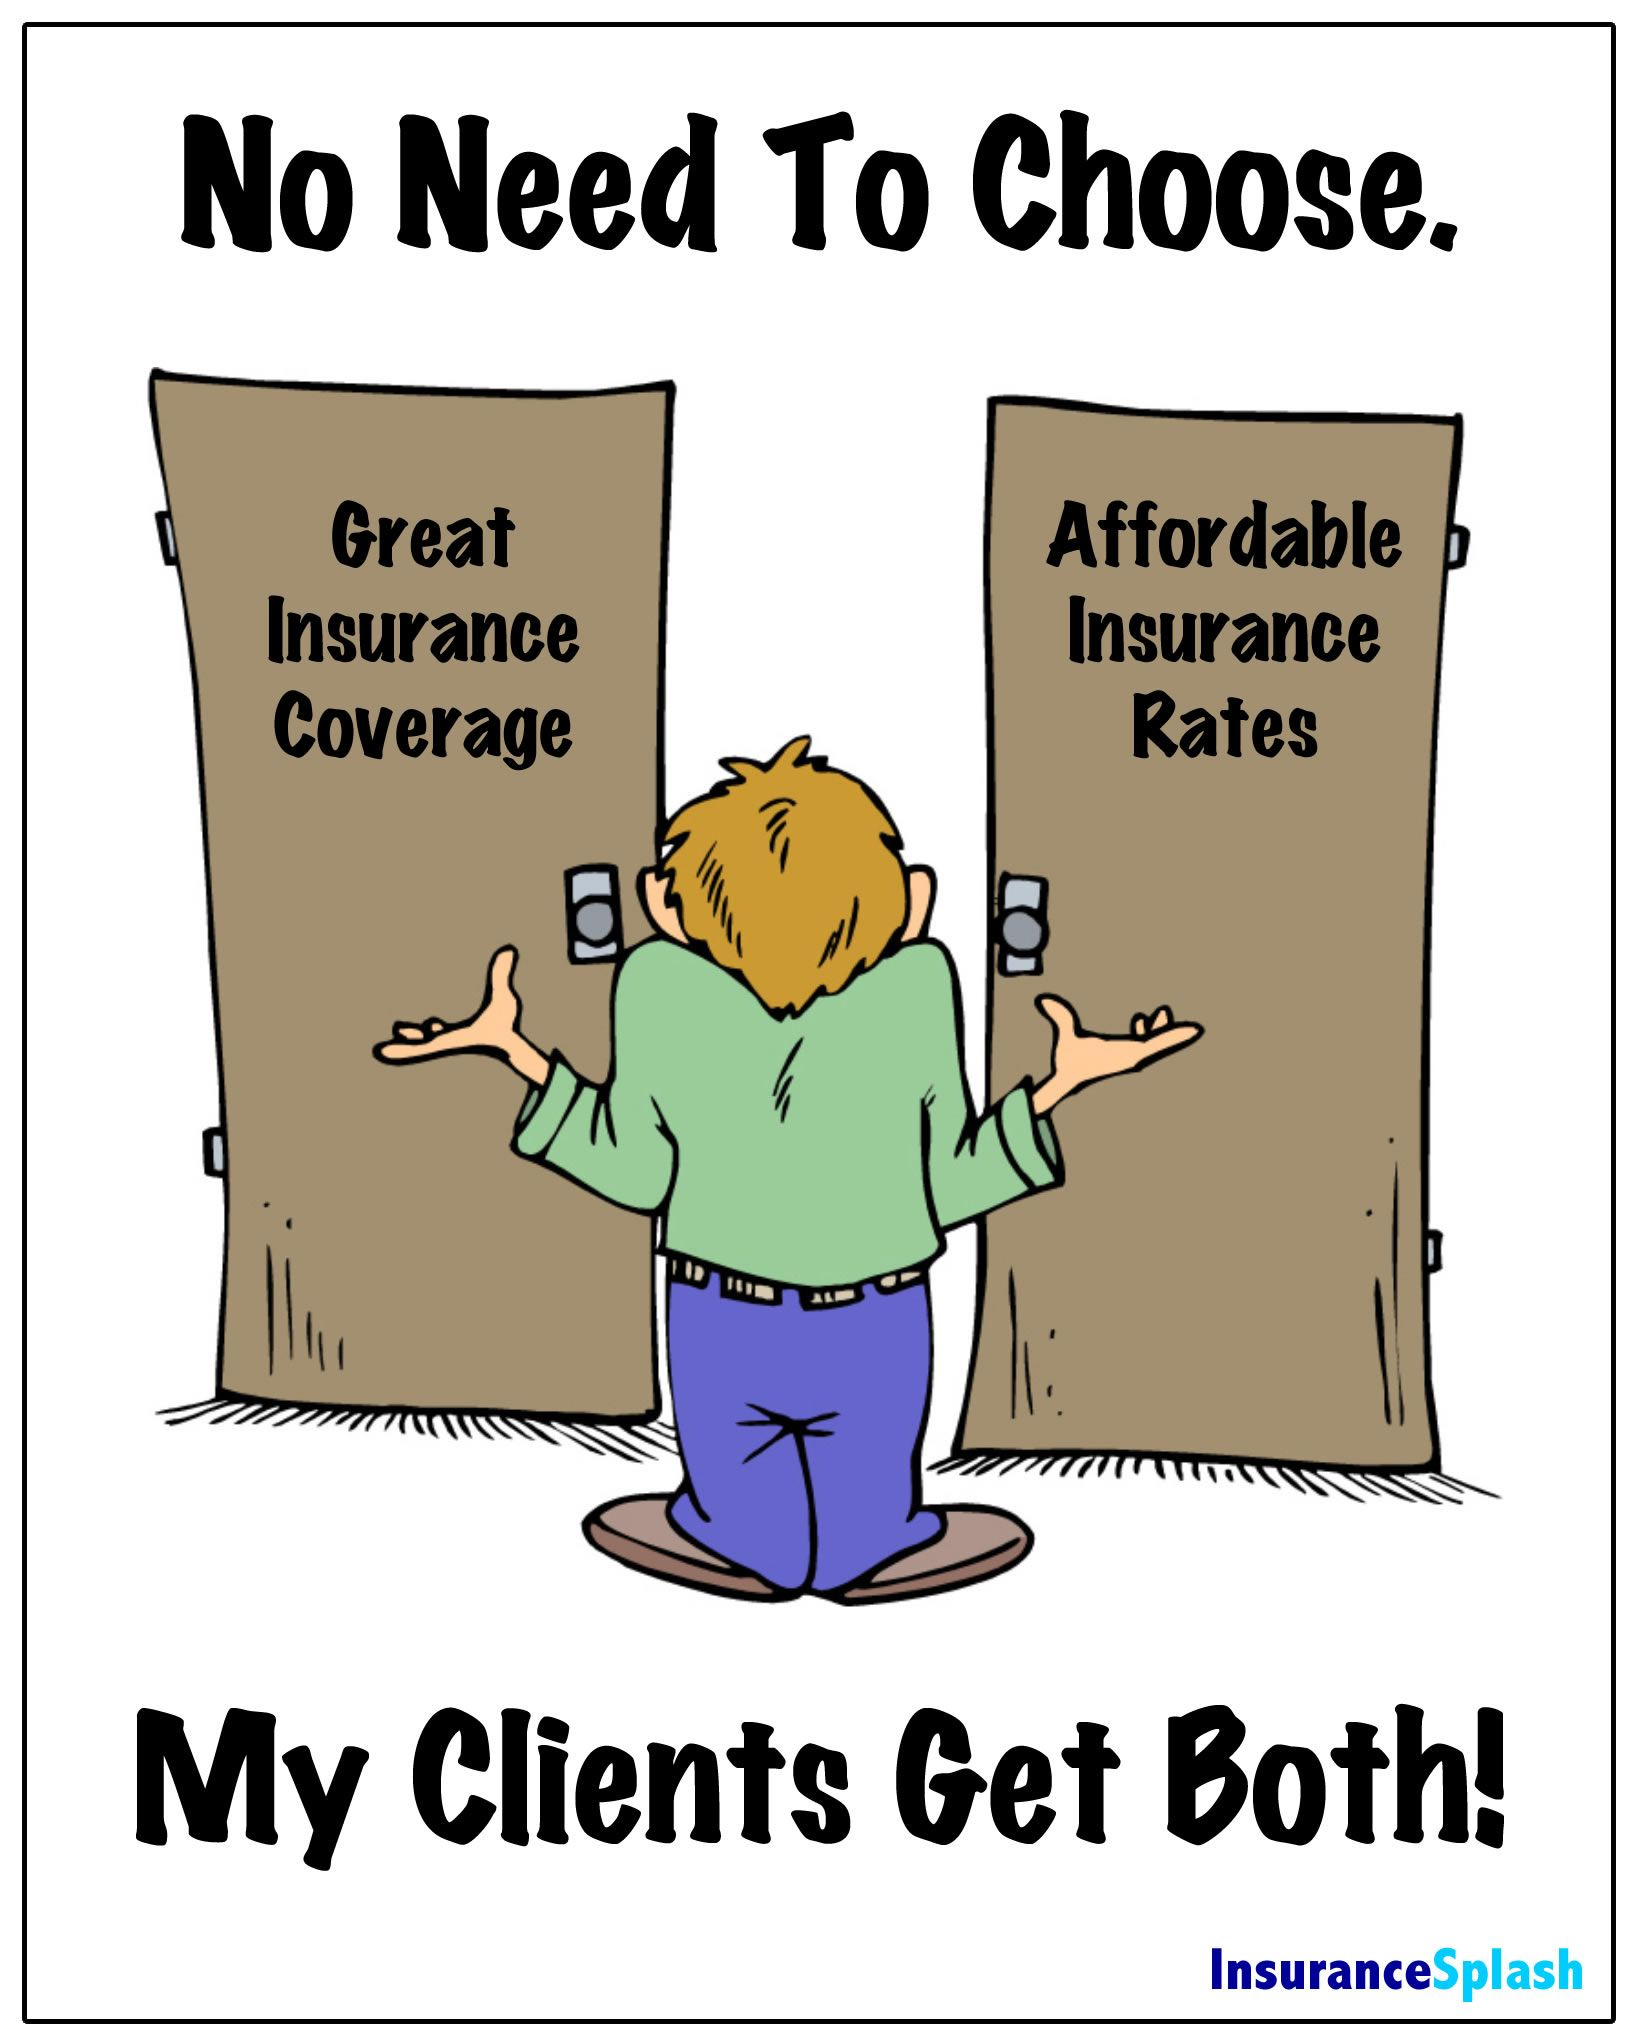 Get great insurance coverage and affordable insurance